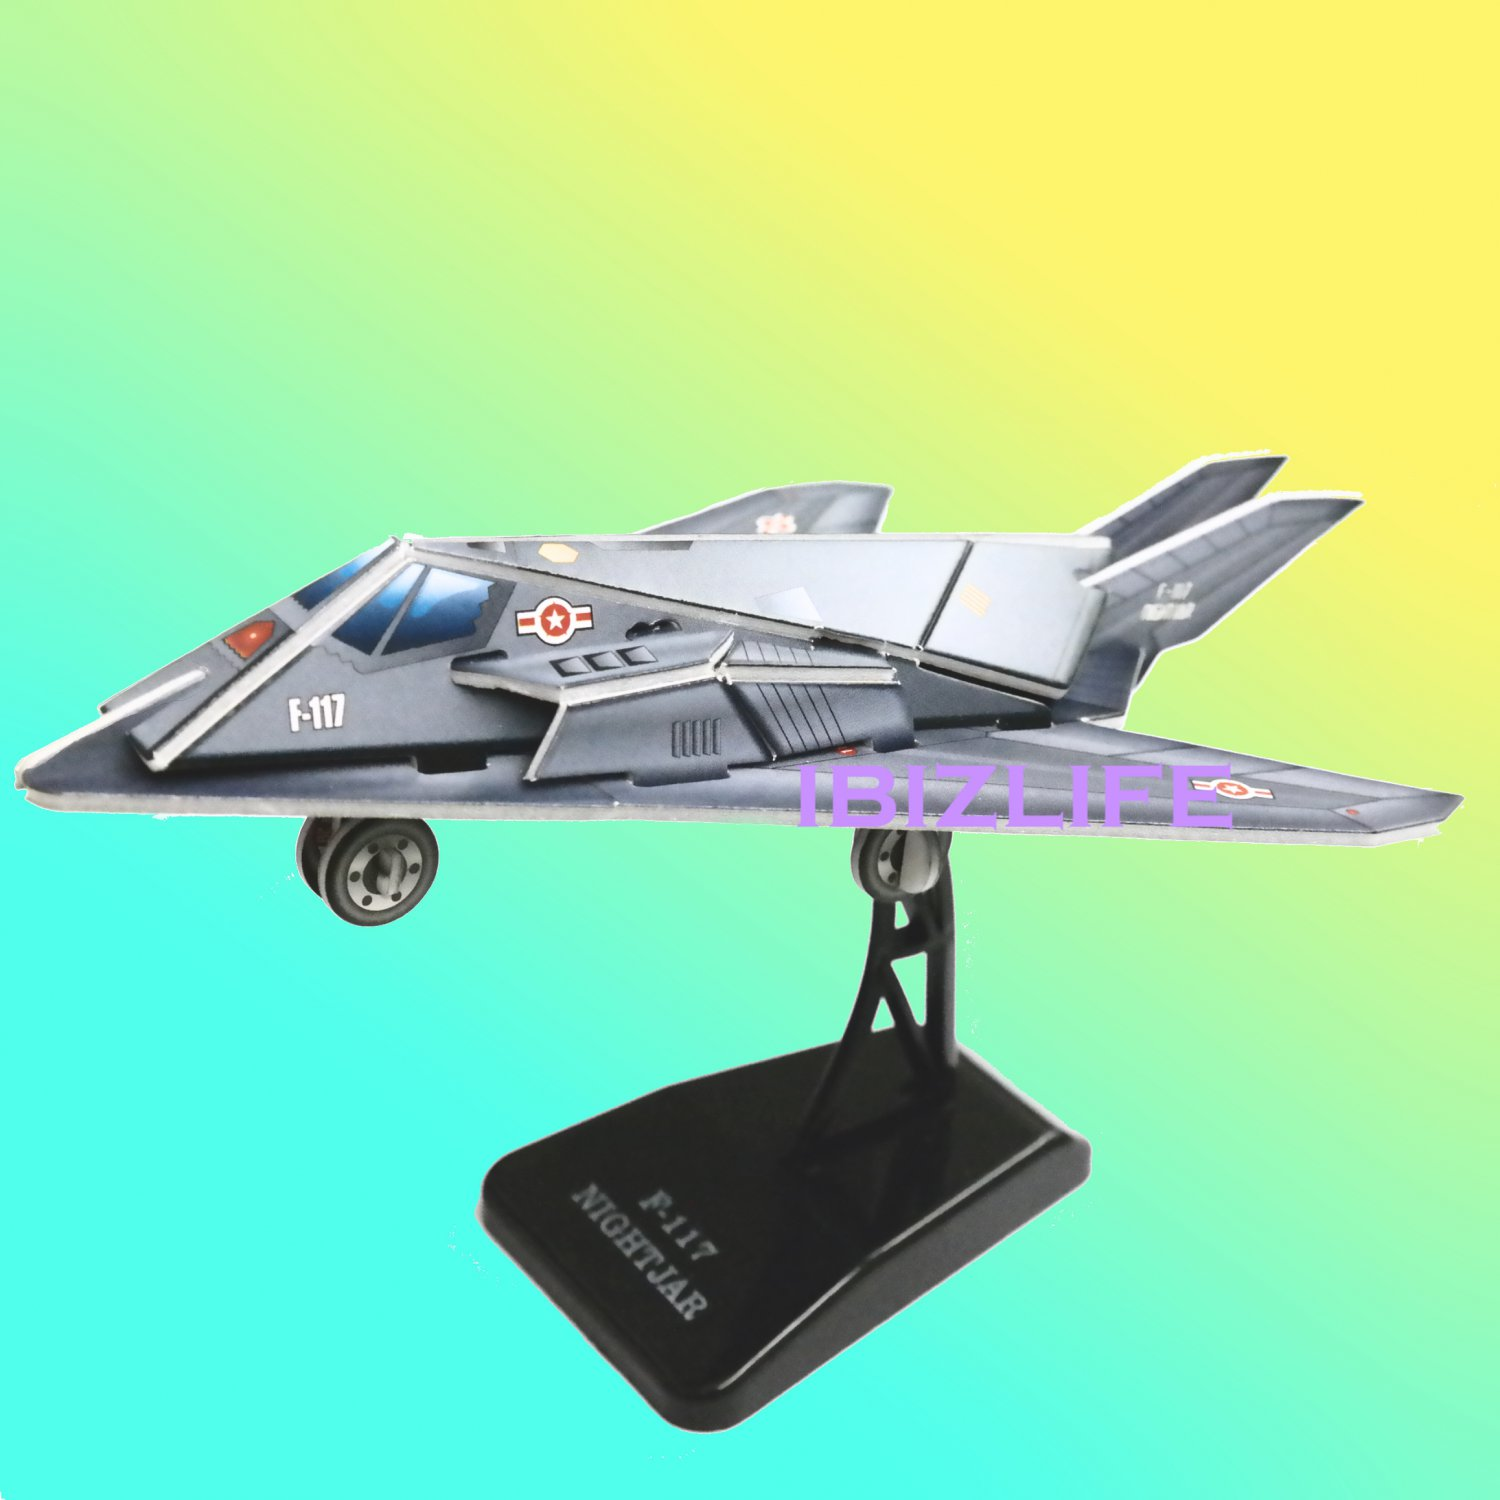 F-117 NIGHTJAR PAPER 3D puzzle DIY jigsaw craft model USA AIR FORCE Desktop Deco as gift (pc42)